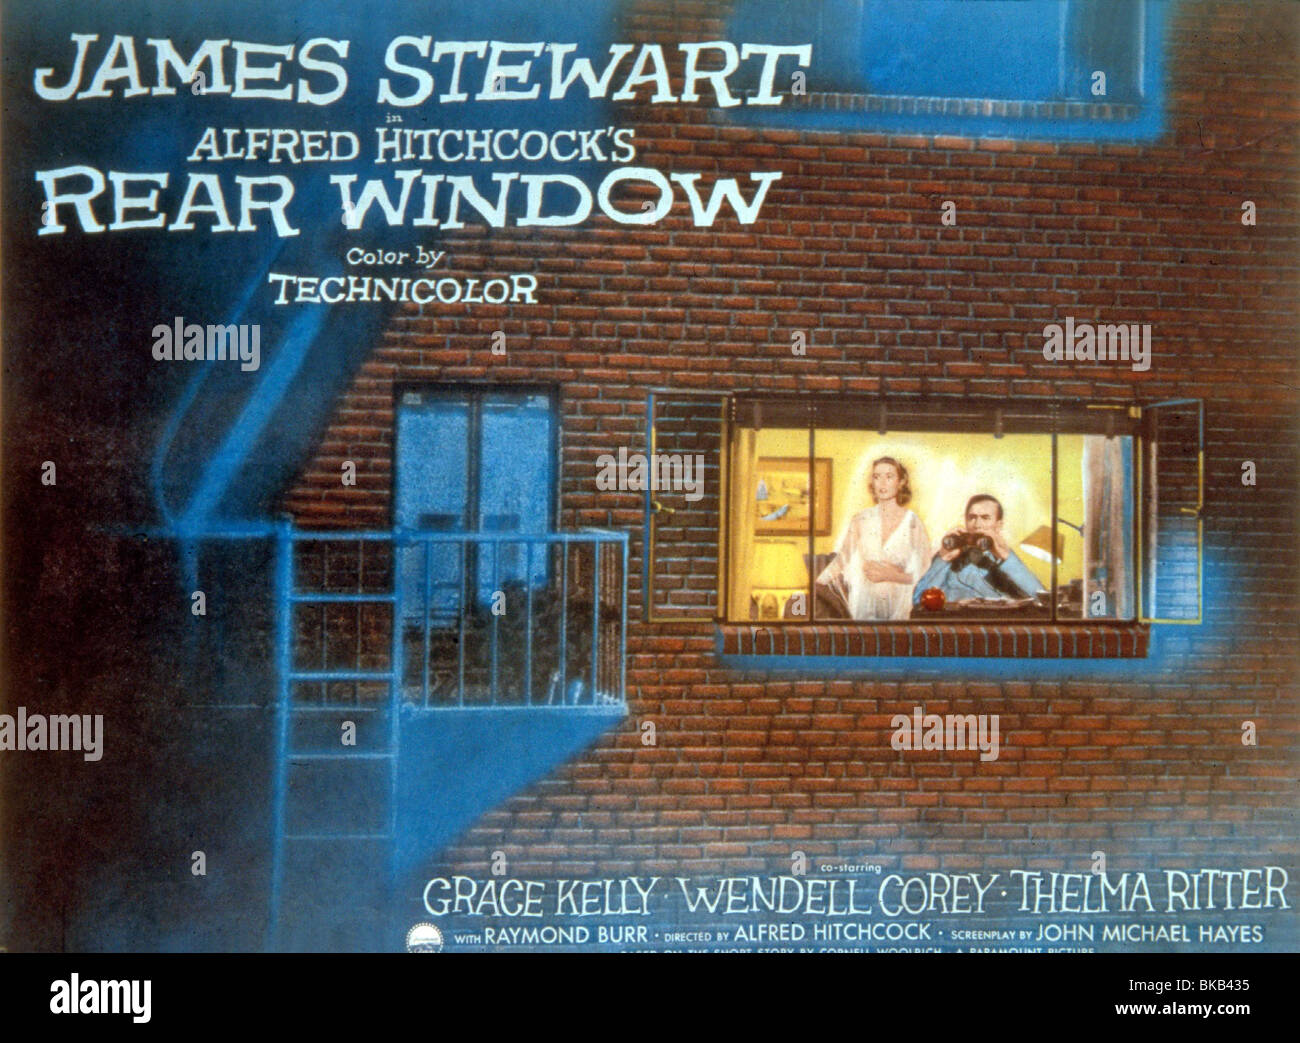 REAR WINDOW -1954 POSTER - Stock Image